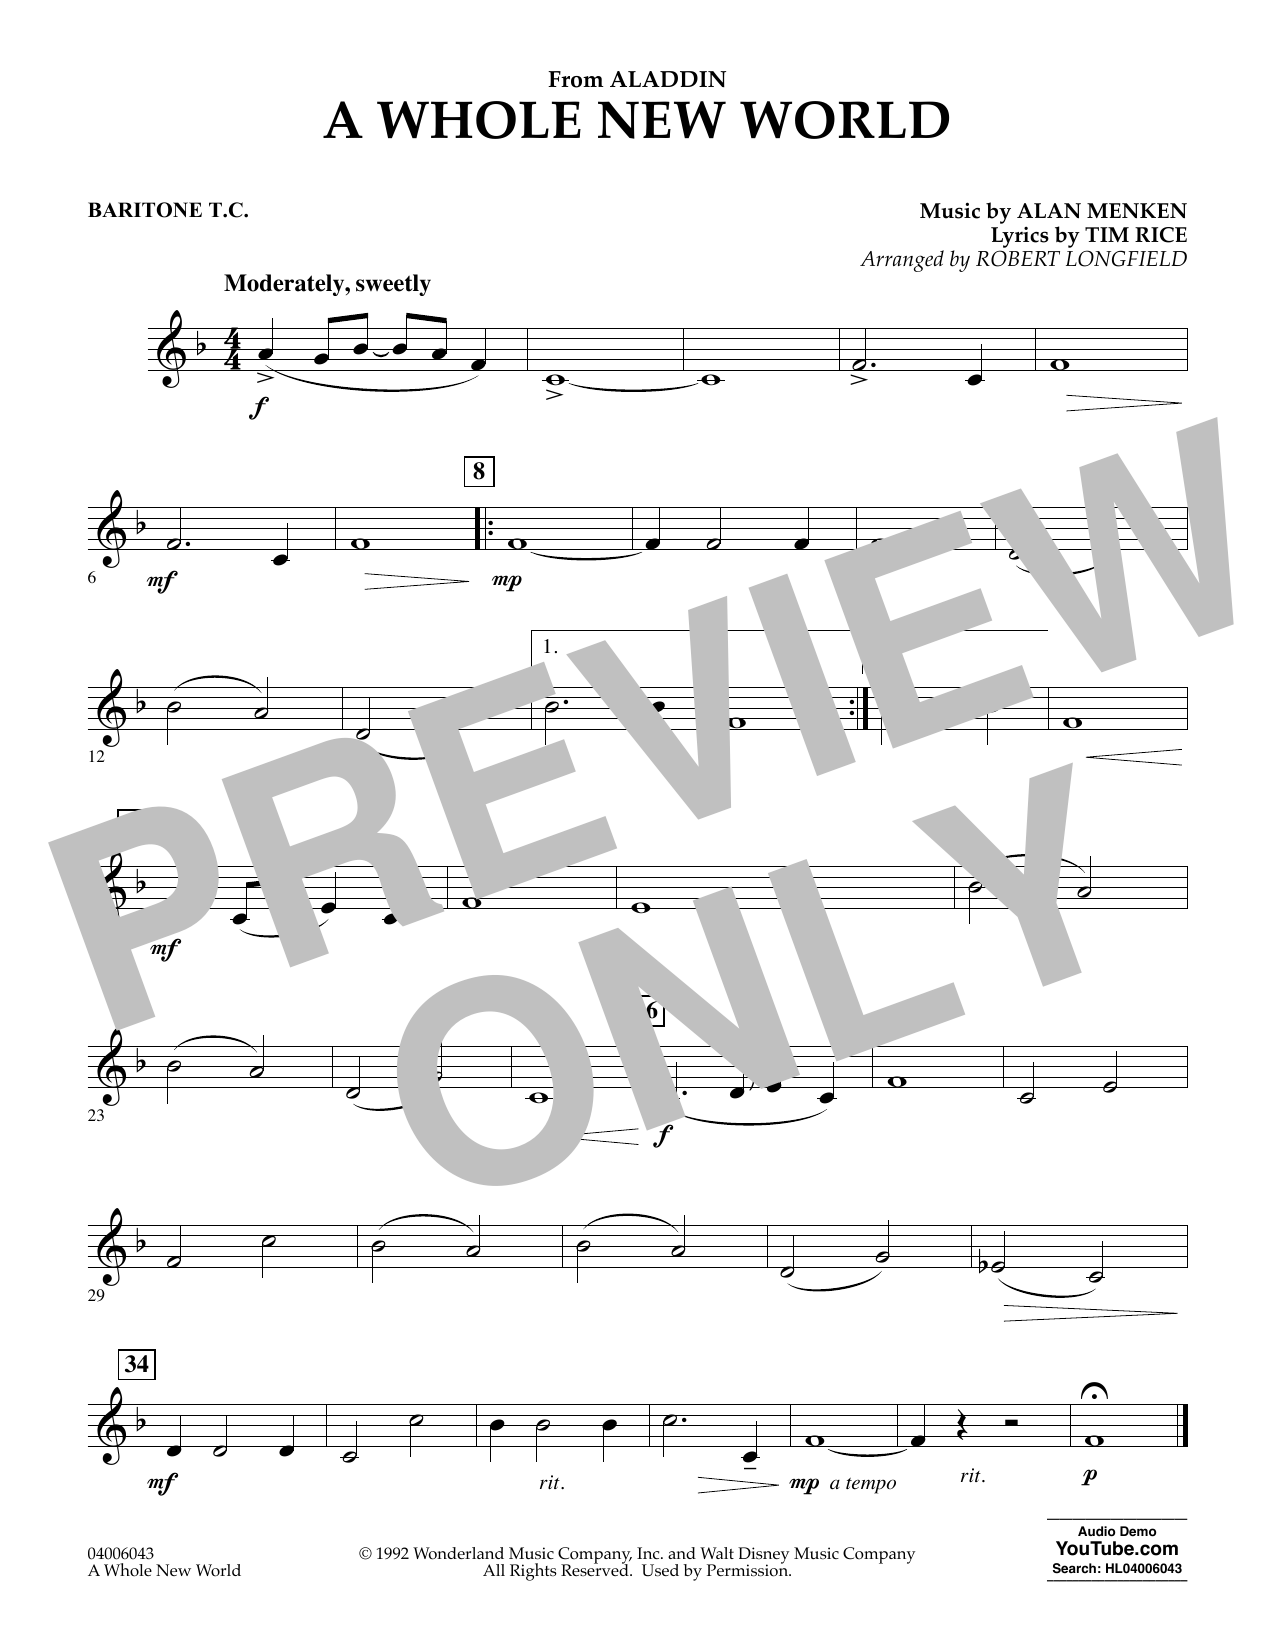 Download Alan Menken 'A Whole New World (from Aladdin) (arr. Robert Longfield) - Baritone T.C.' Digital Sheet Music Notes & Chords and start playing in minutes